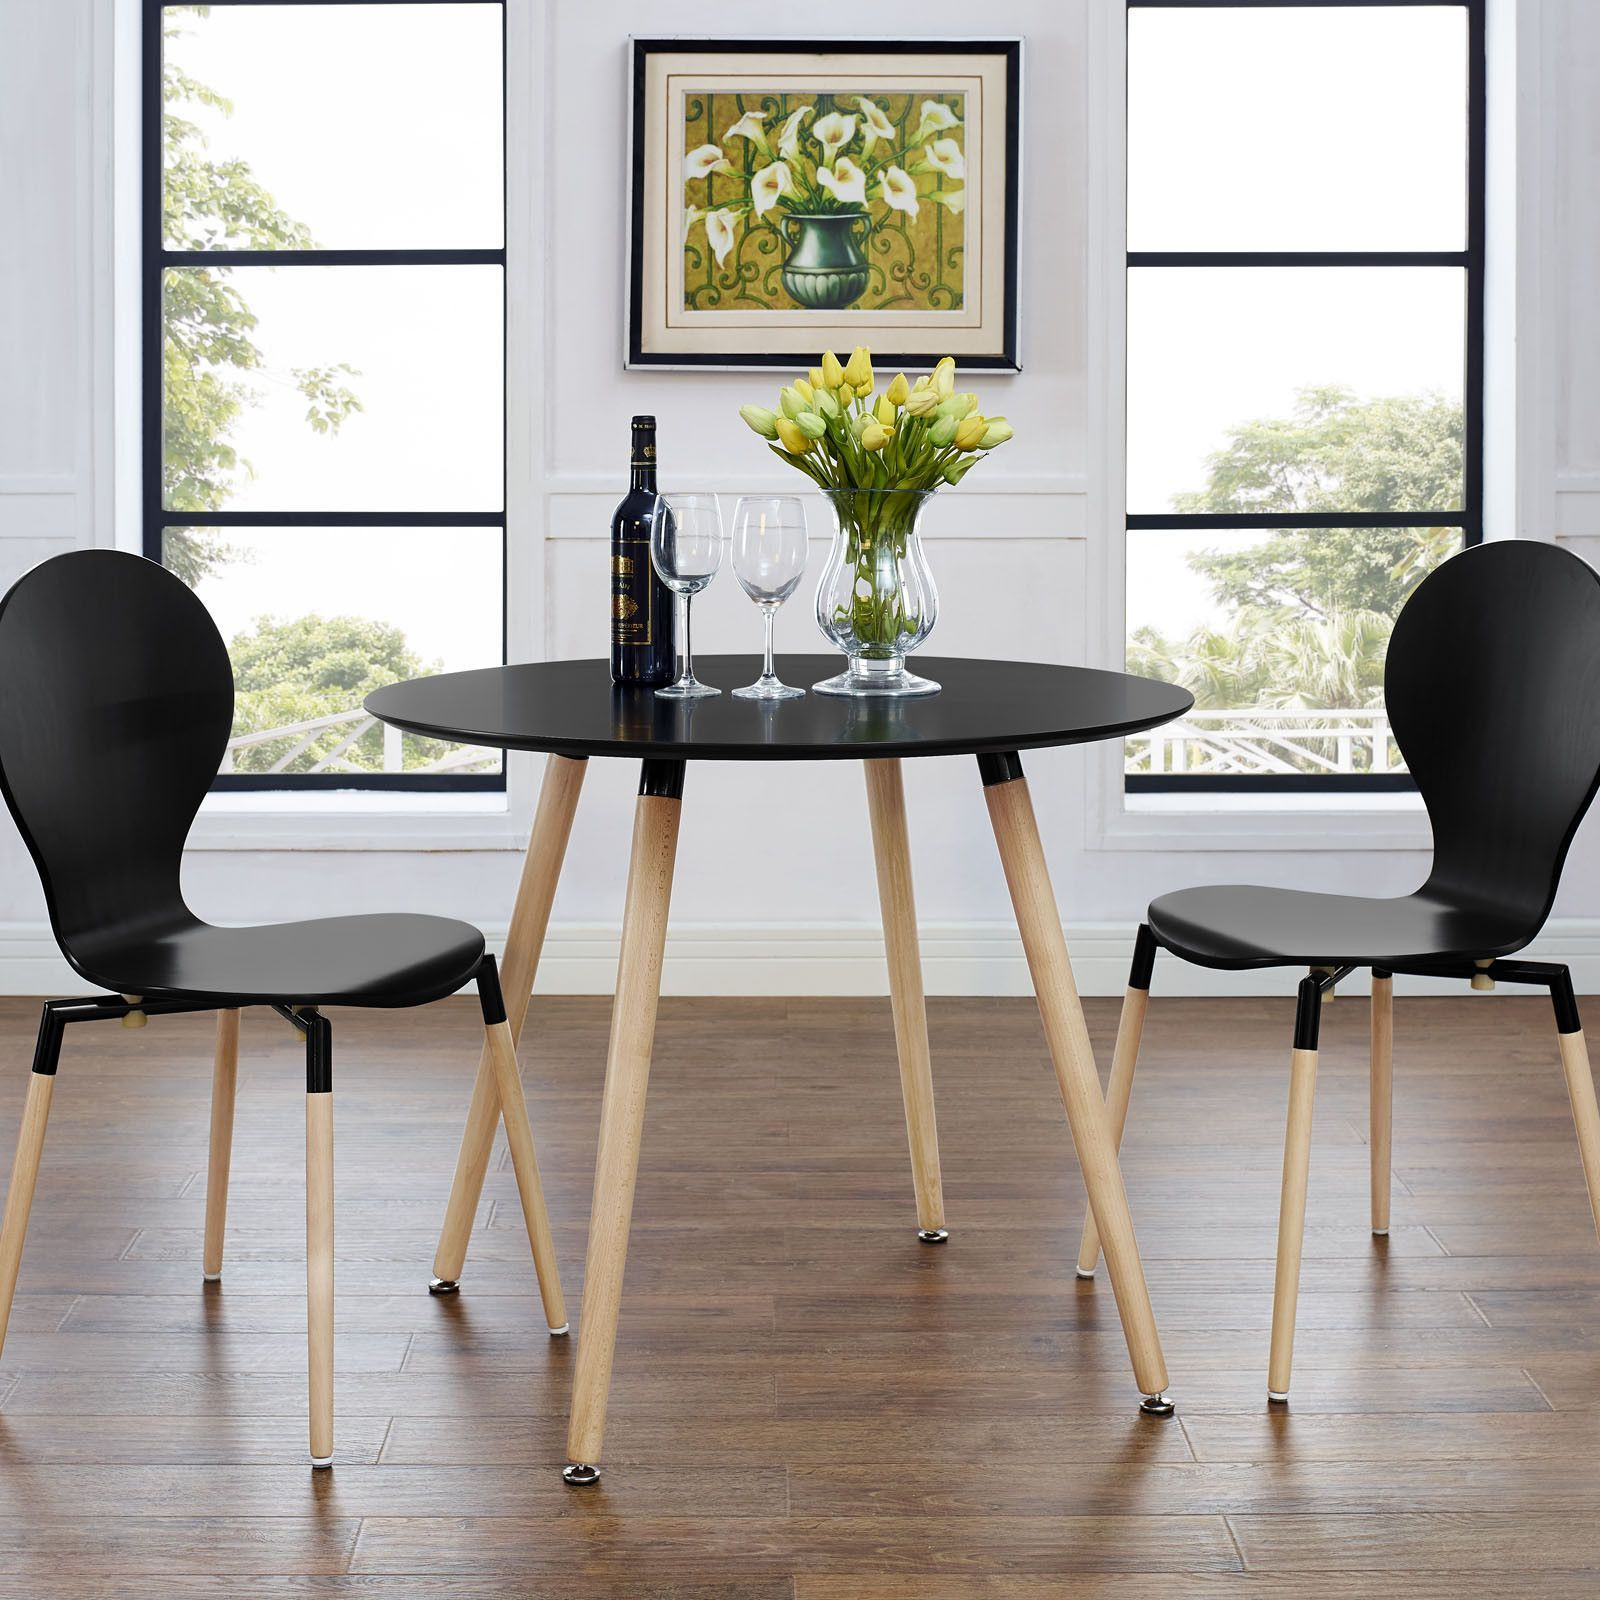 Minimalist Modern Dining Table Circular Dining Table Dining